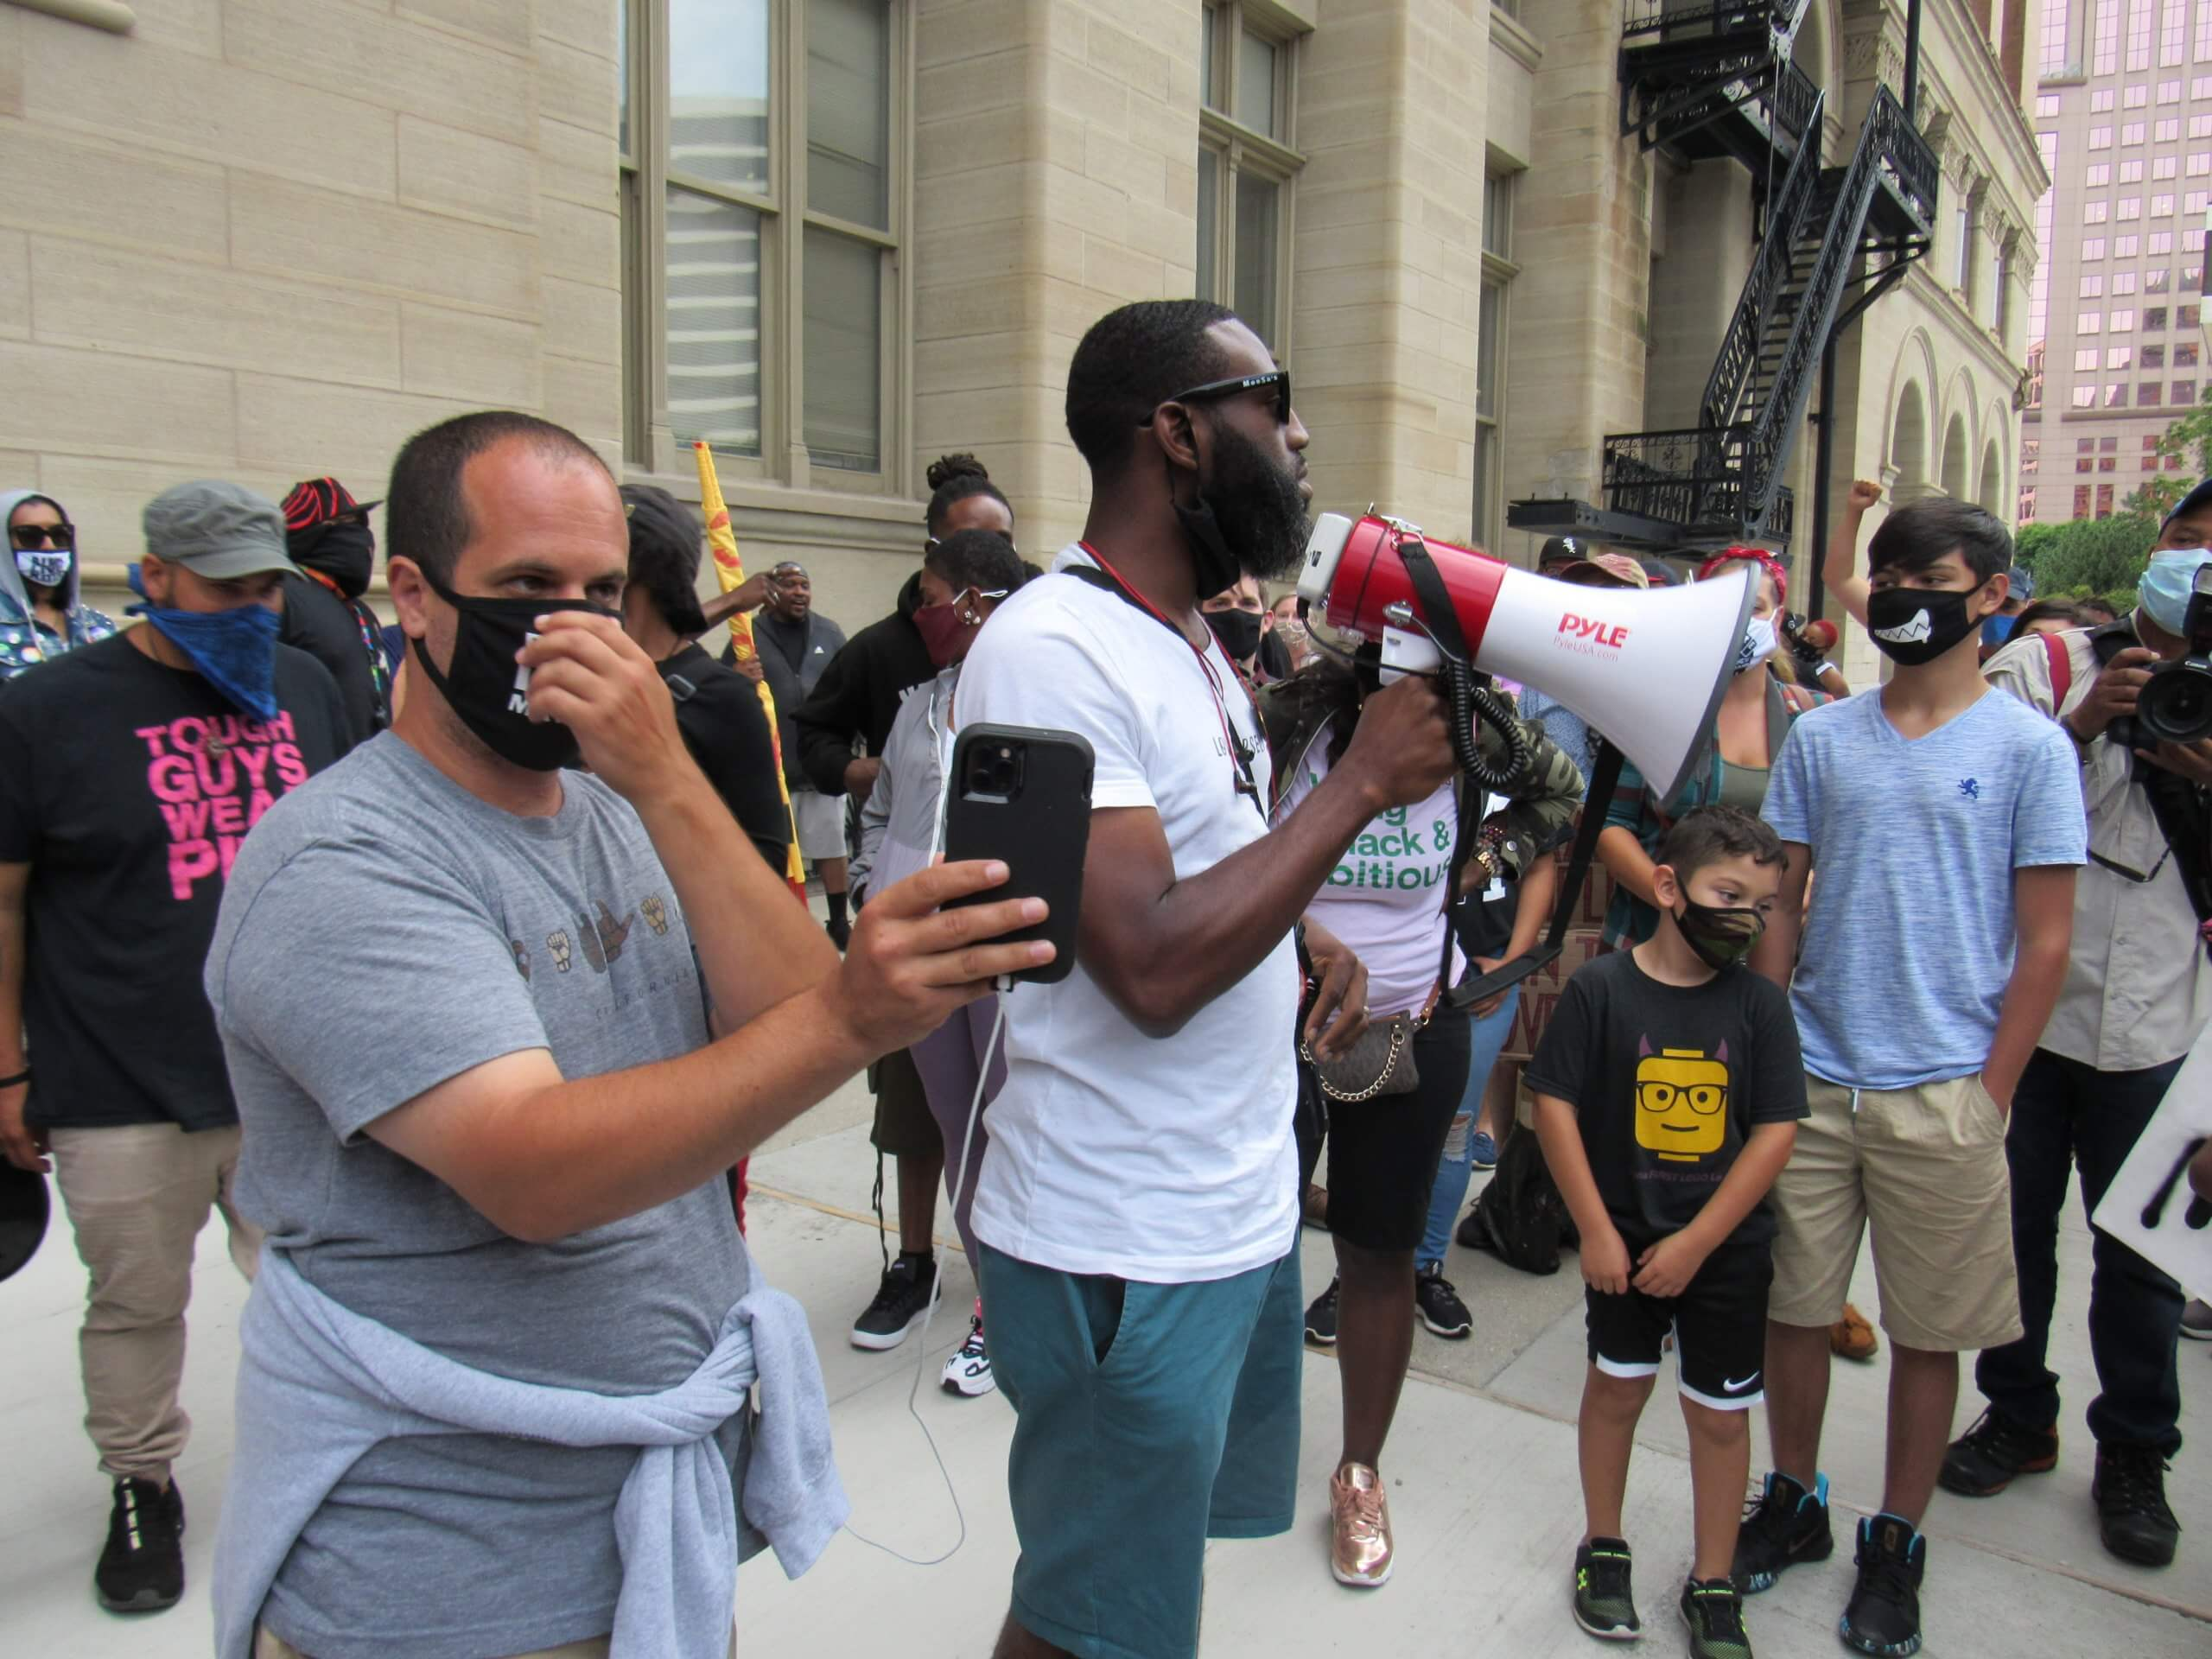 Rep. David Bowen stands beside Rep. Jonathan Brostoff as he speaks to the crowd of protesters. (Photo by Isiah Holmes)